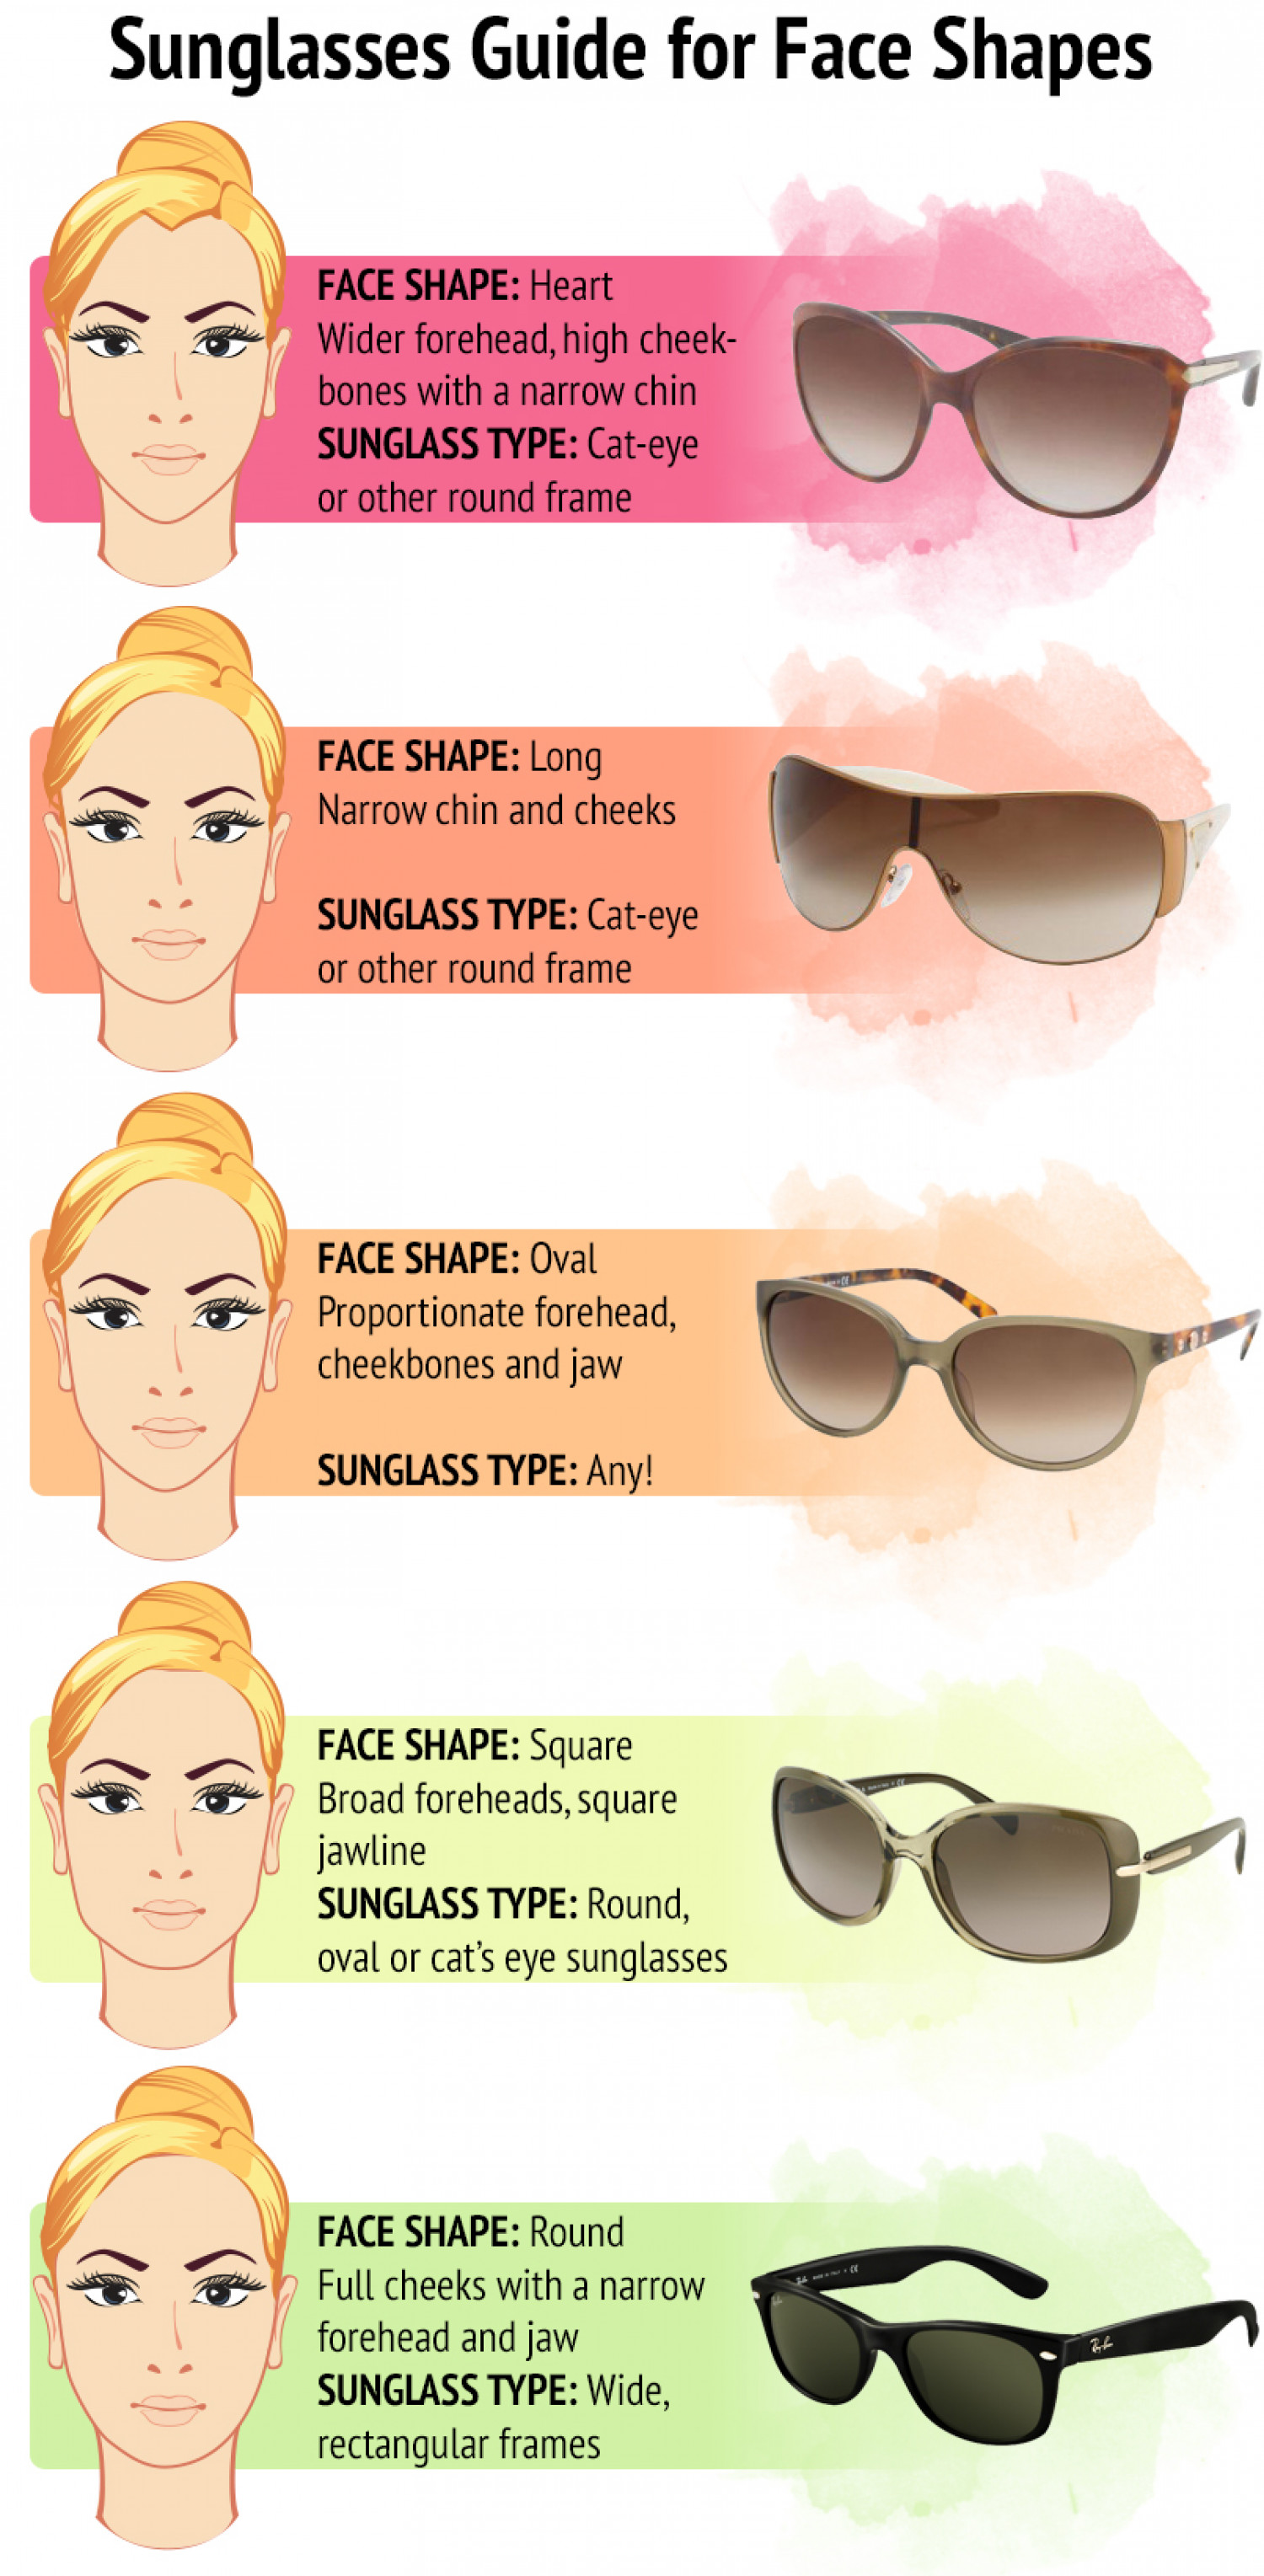 Sunglasses Guide for Face Shapes Infographic